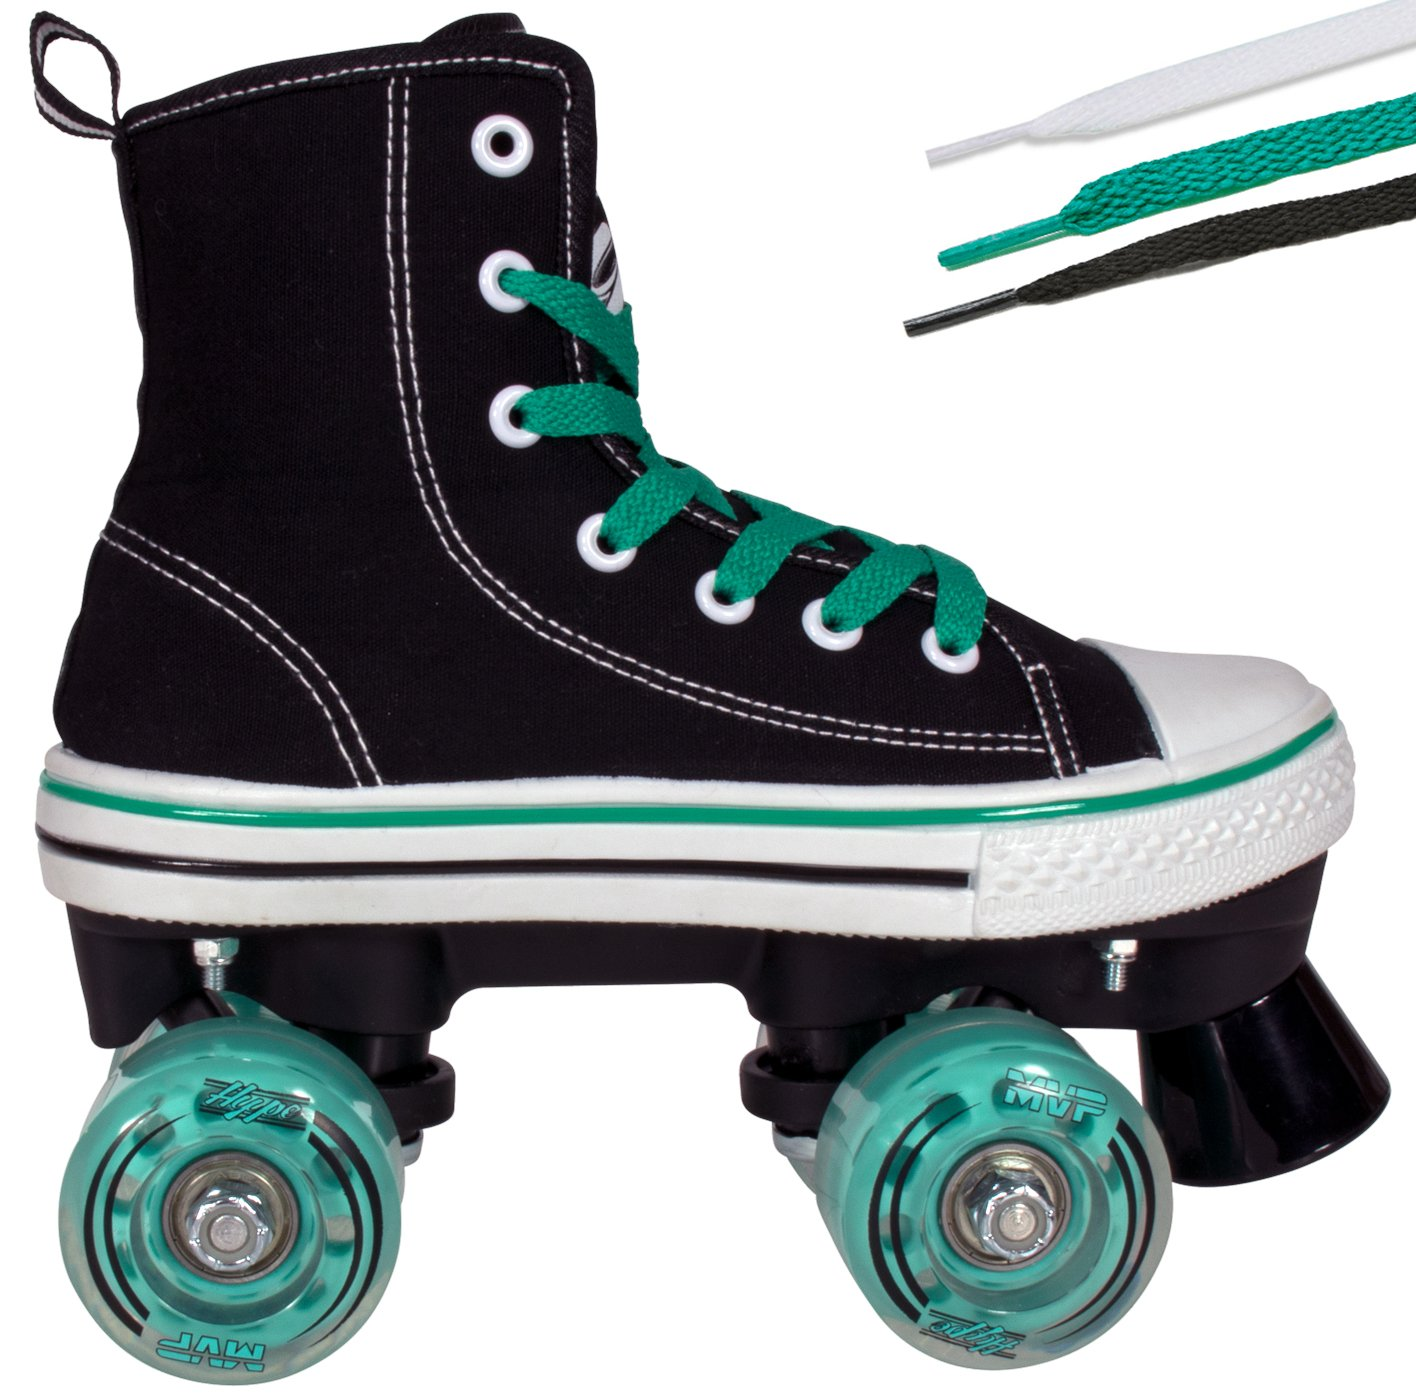 Hype Roller Skates for Girls and Boys MVP Kid's Unisex Quad Roller Skates with High Top Shoe Style for Indoor/Outdoor (Black & Teal, 3)